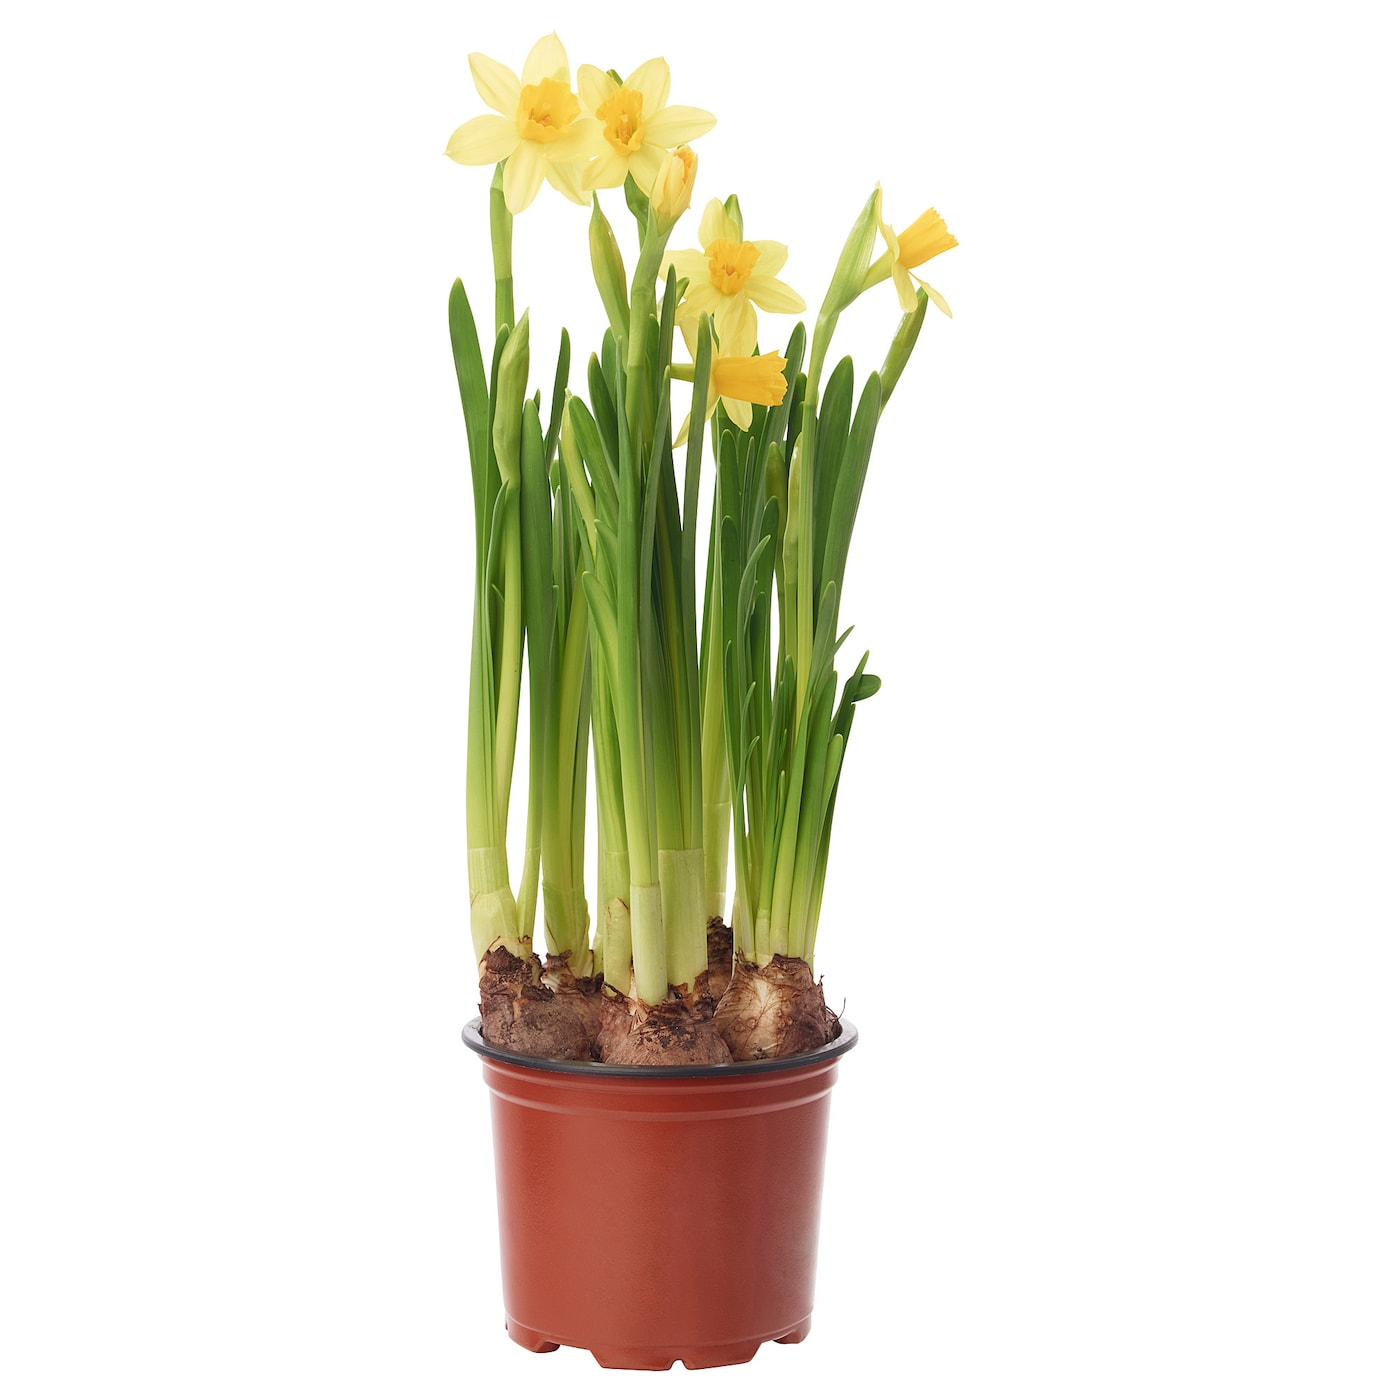 IKEA NARCISSUS CYCLAMINEUS TETE A TETE potted plant